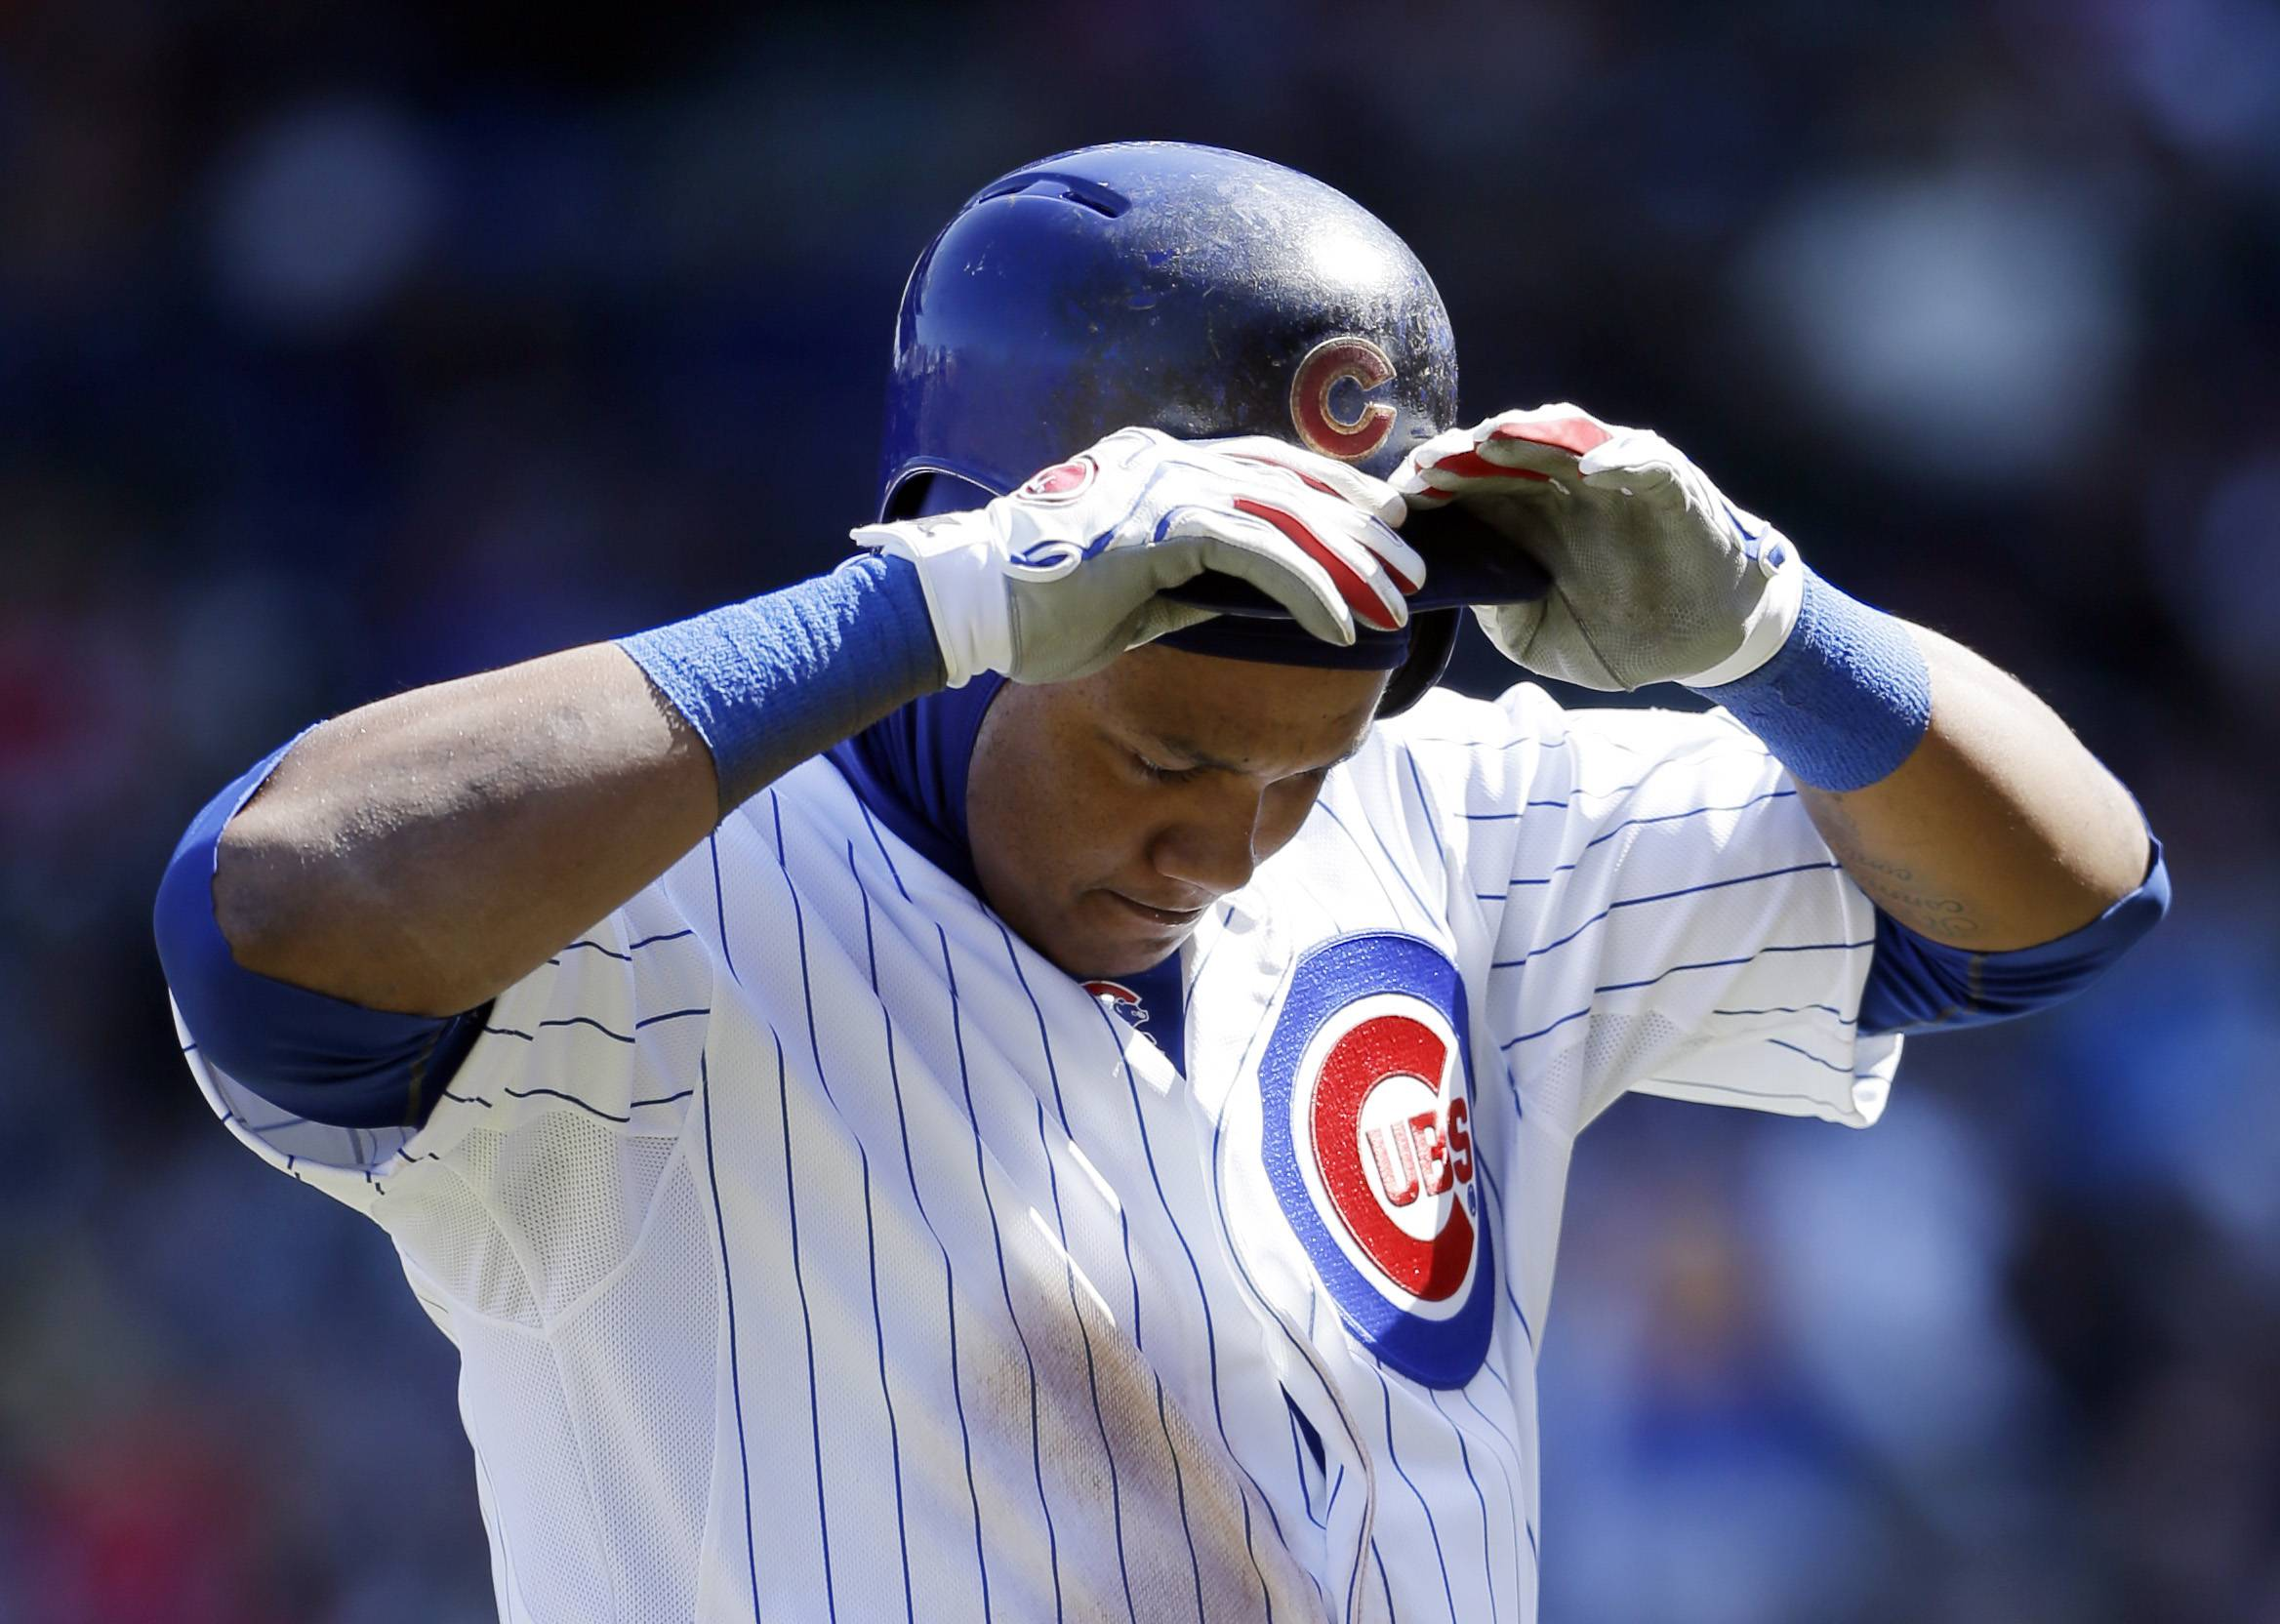 Chicago Cubs' Starlin Castro walks back to the dugout after getting out on a double play during the third inning of a baseball game against the Philadelphia Phillies in Chicago, Saturday, April  5, 2014. Emilio Bonifacio was out at second.